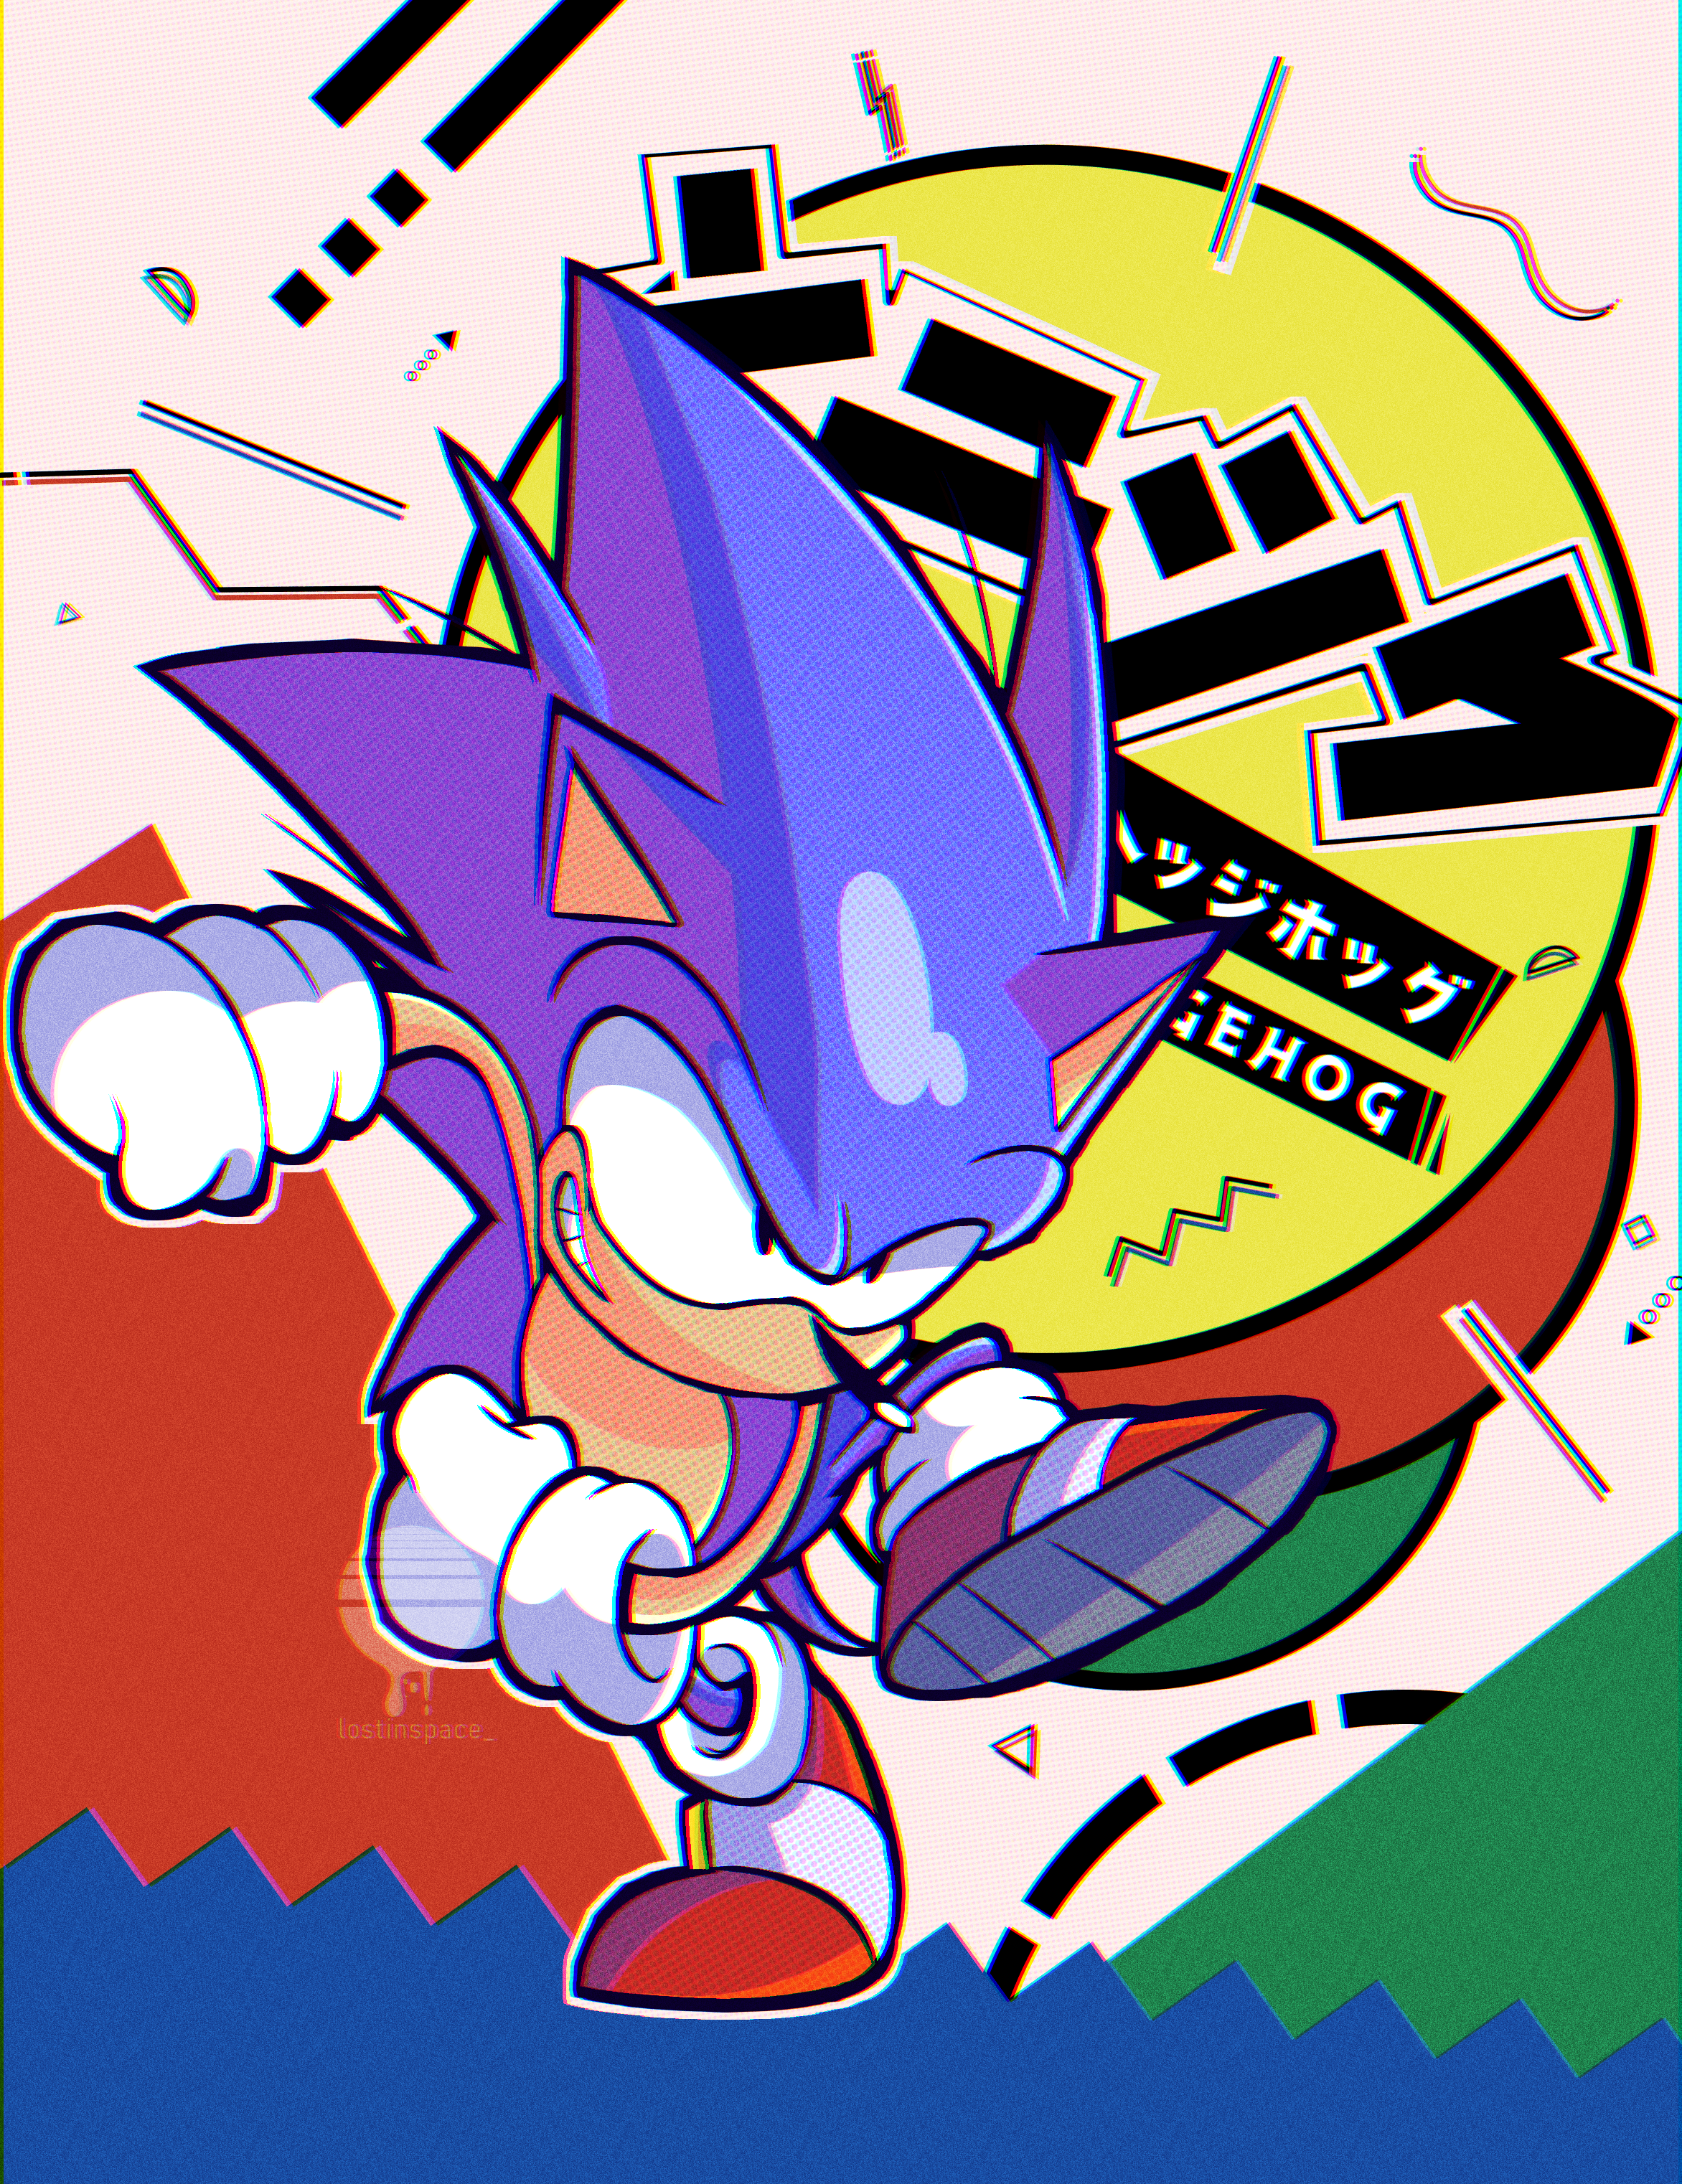 another sonic fanart cuz why not